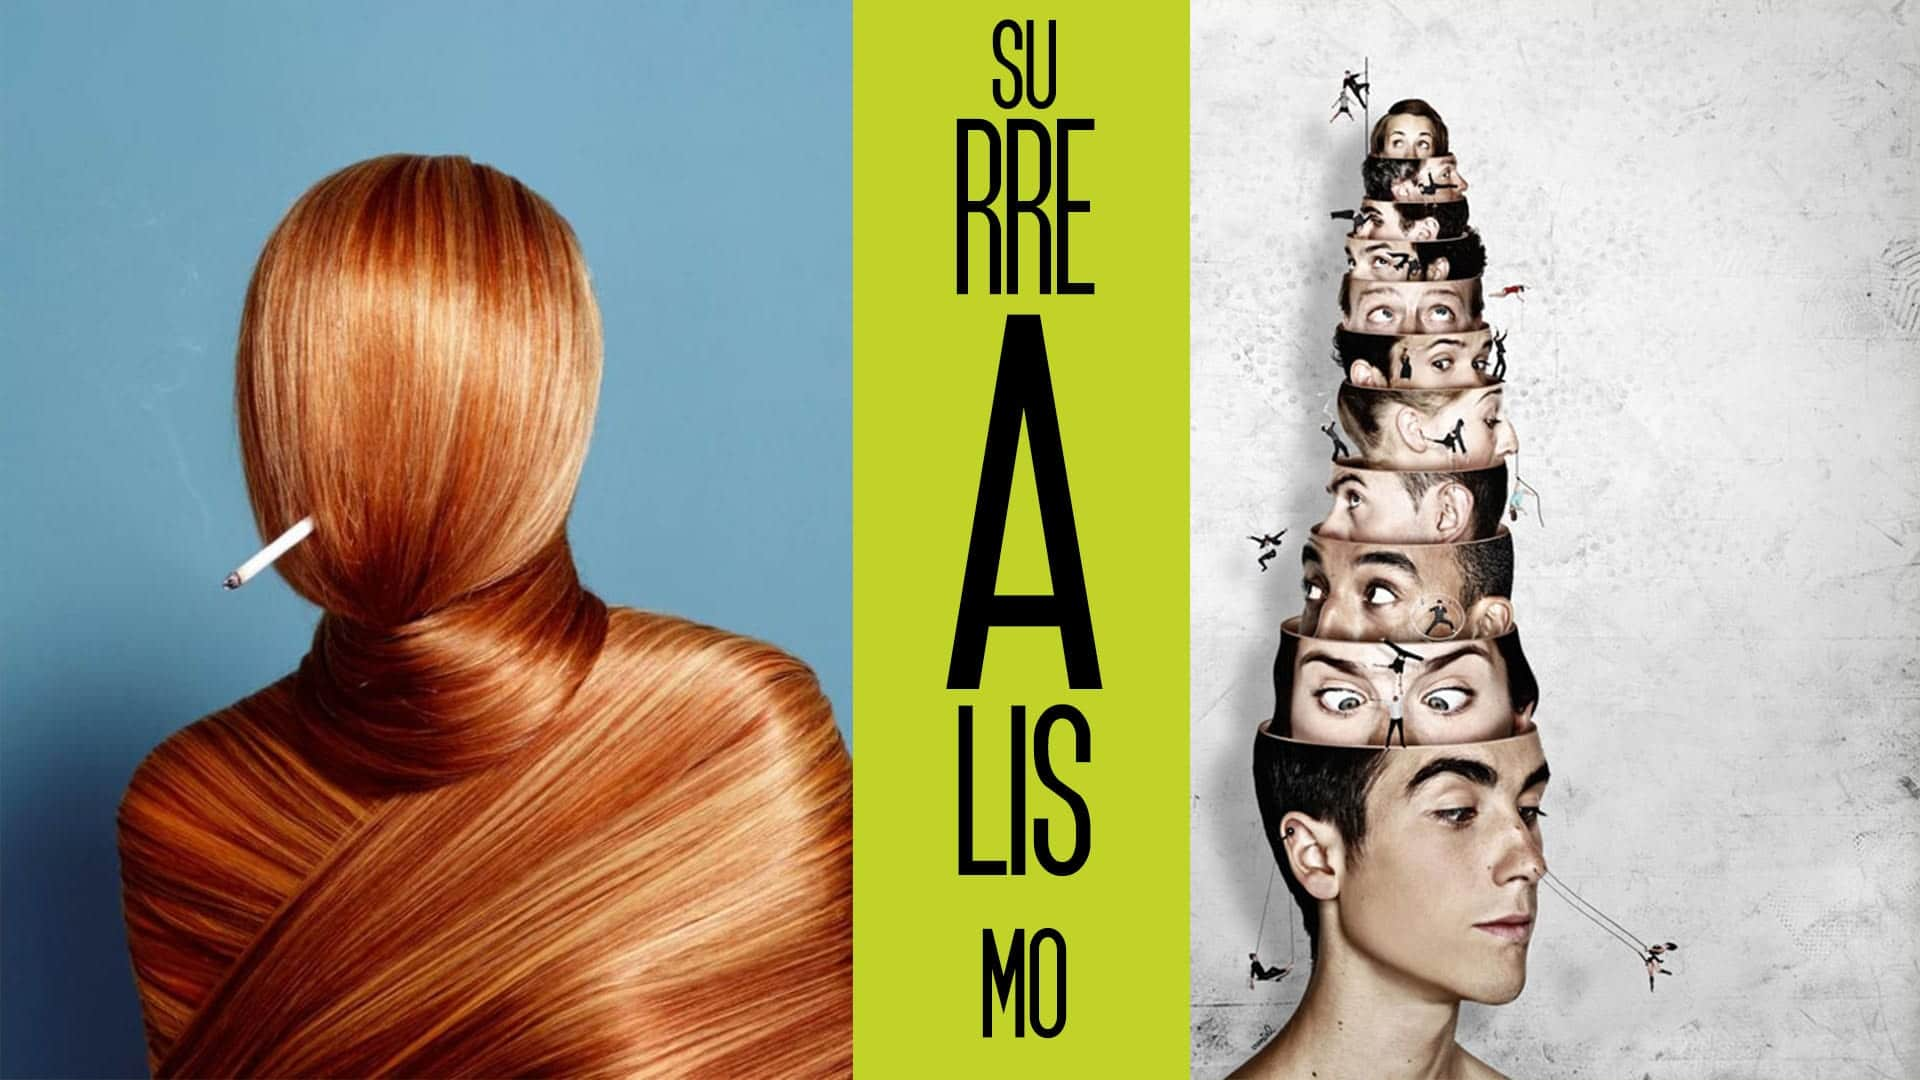 surrealismo-carteles